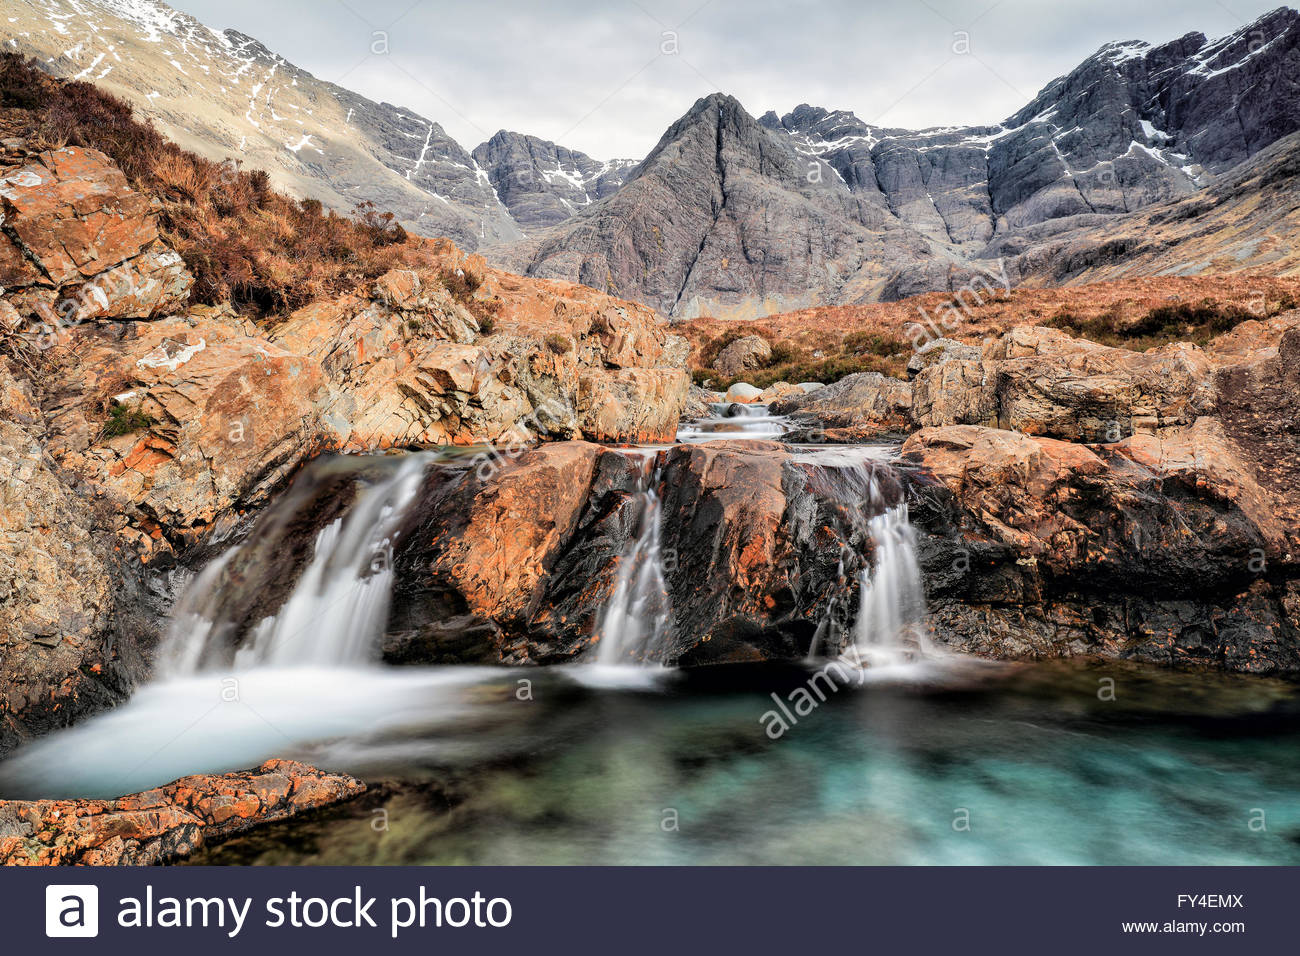 The beautiful clear turquoise water of the Fairy Pools and the Black Cuilin mountain scenery from the Isle of Skye. - Stock Image